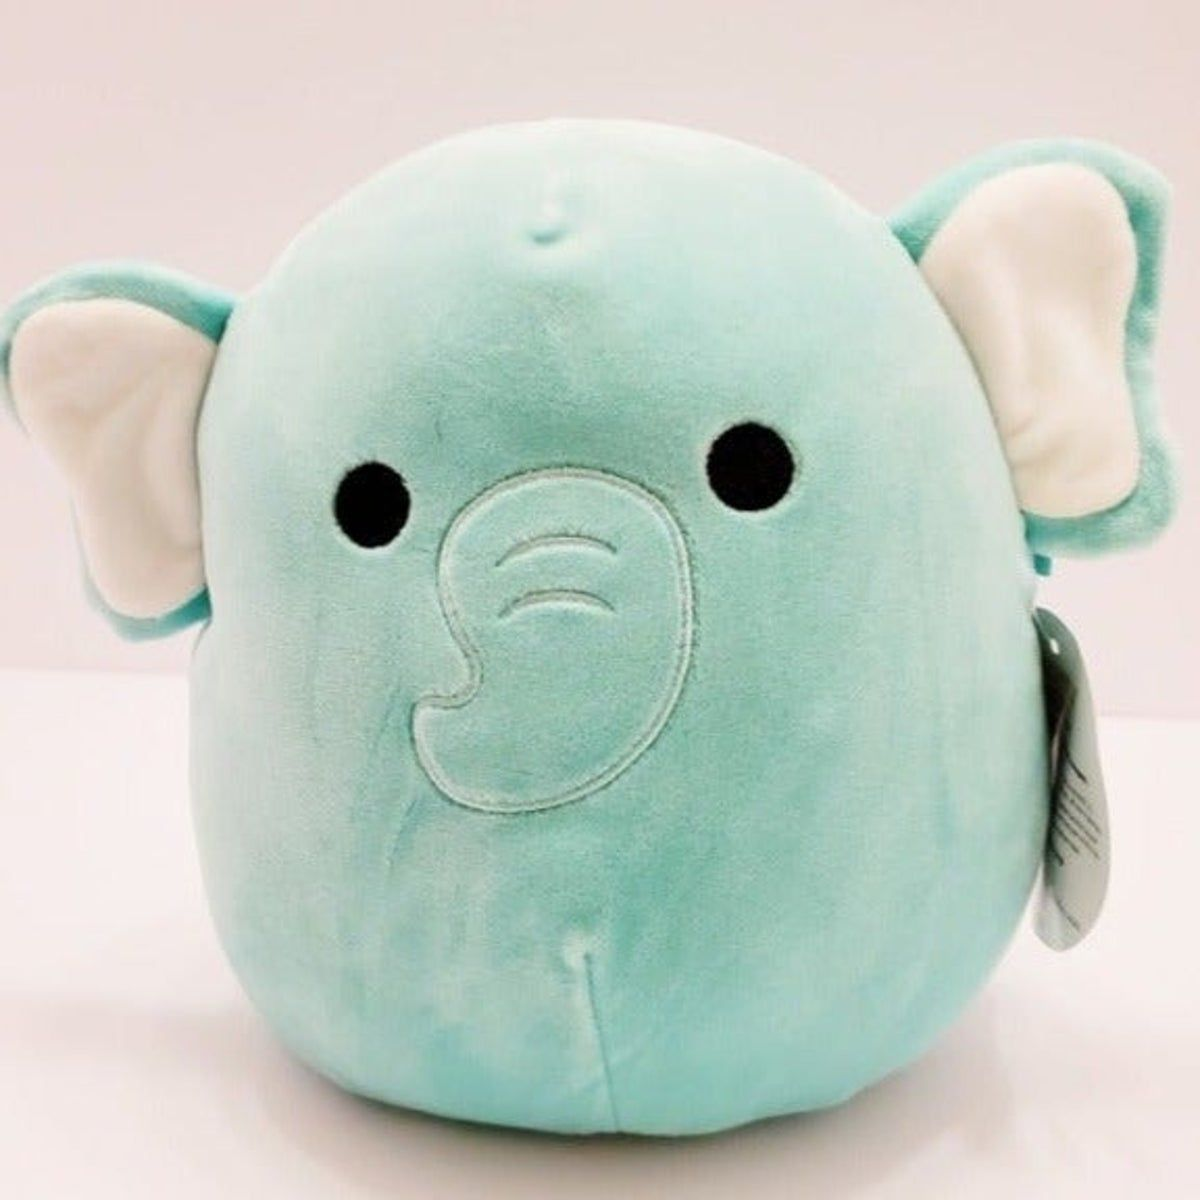 Squishmallows Diego Teal Elephant Nwt In 2021 Animal Pillows Cute Plush Cute Stuffed Animals